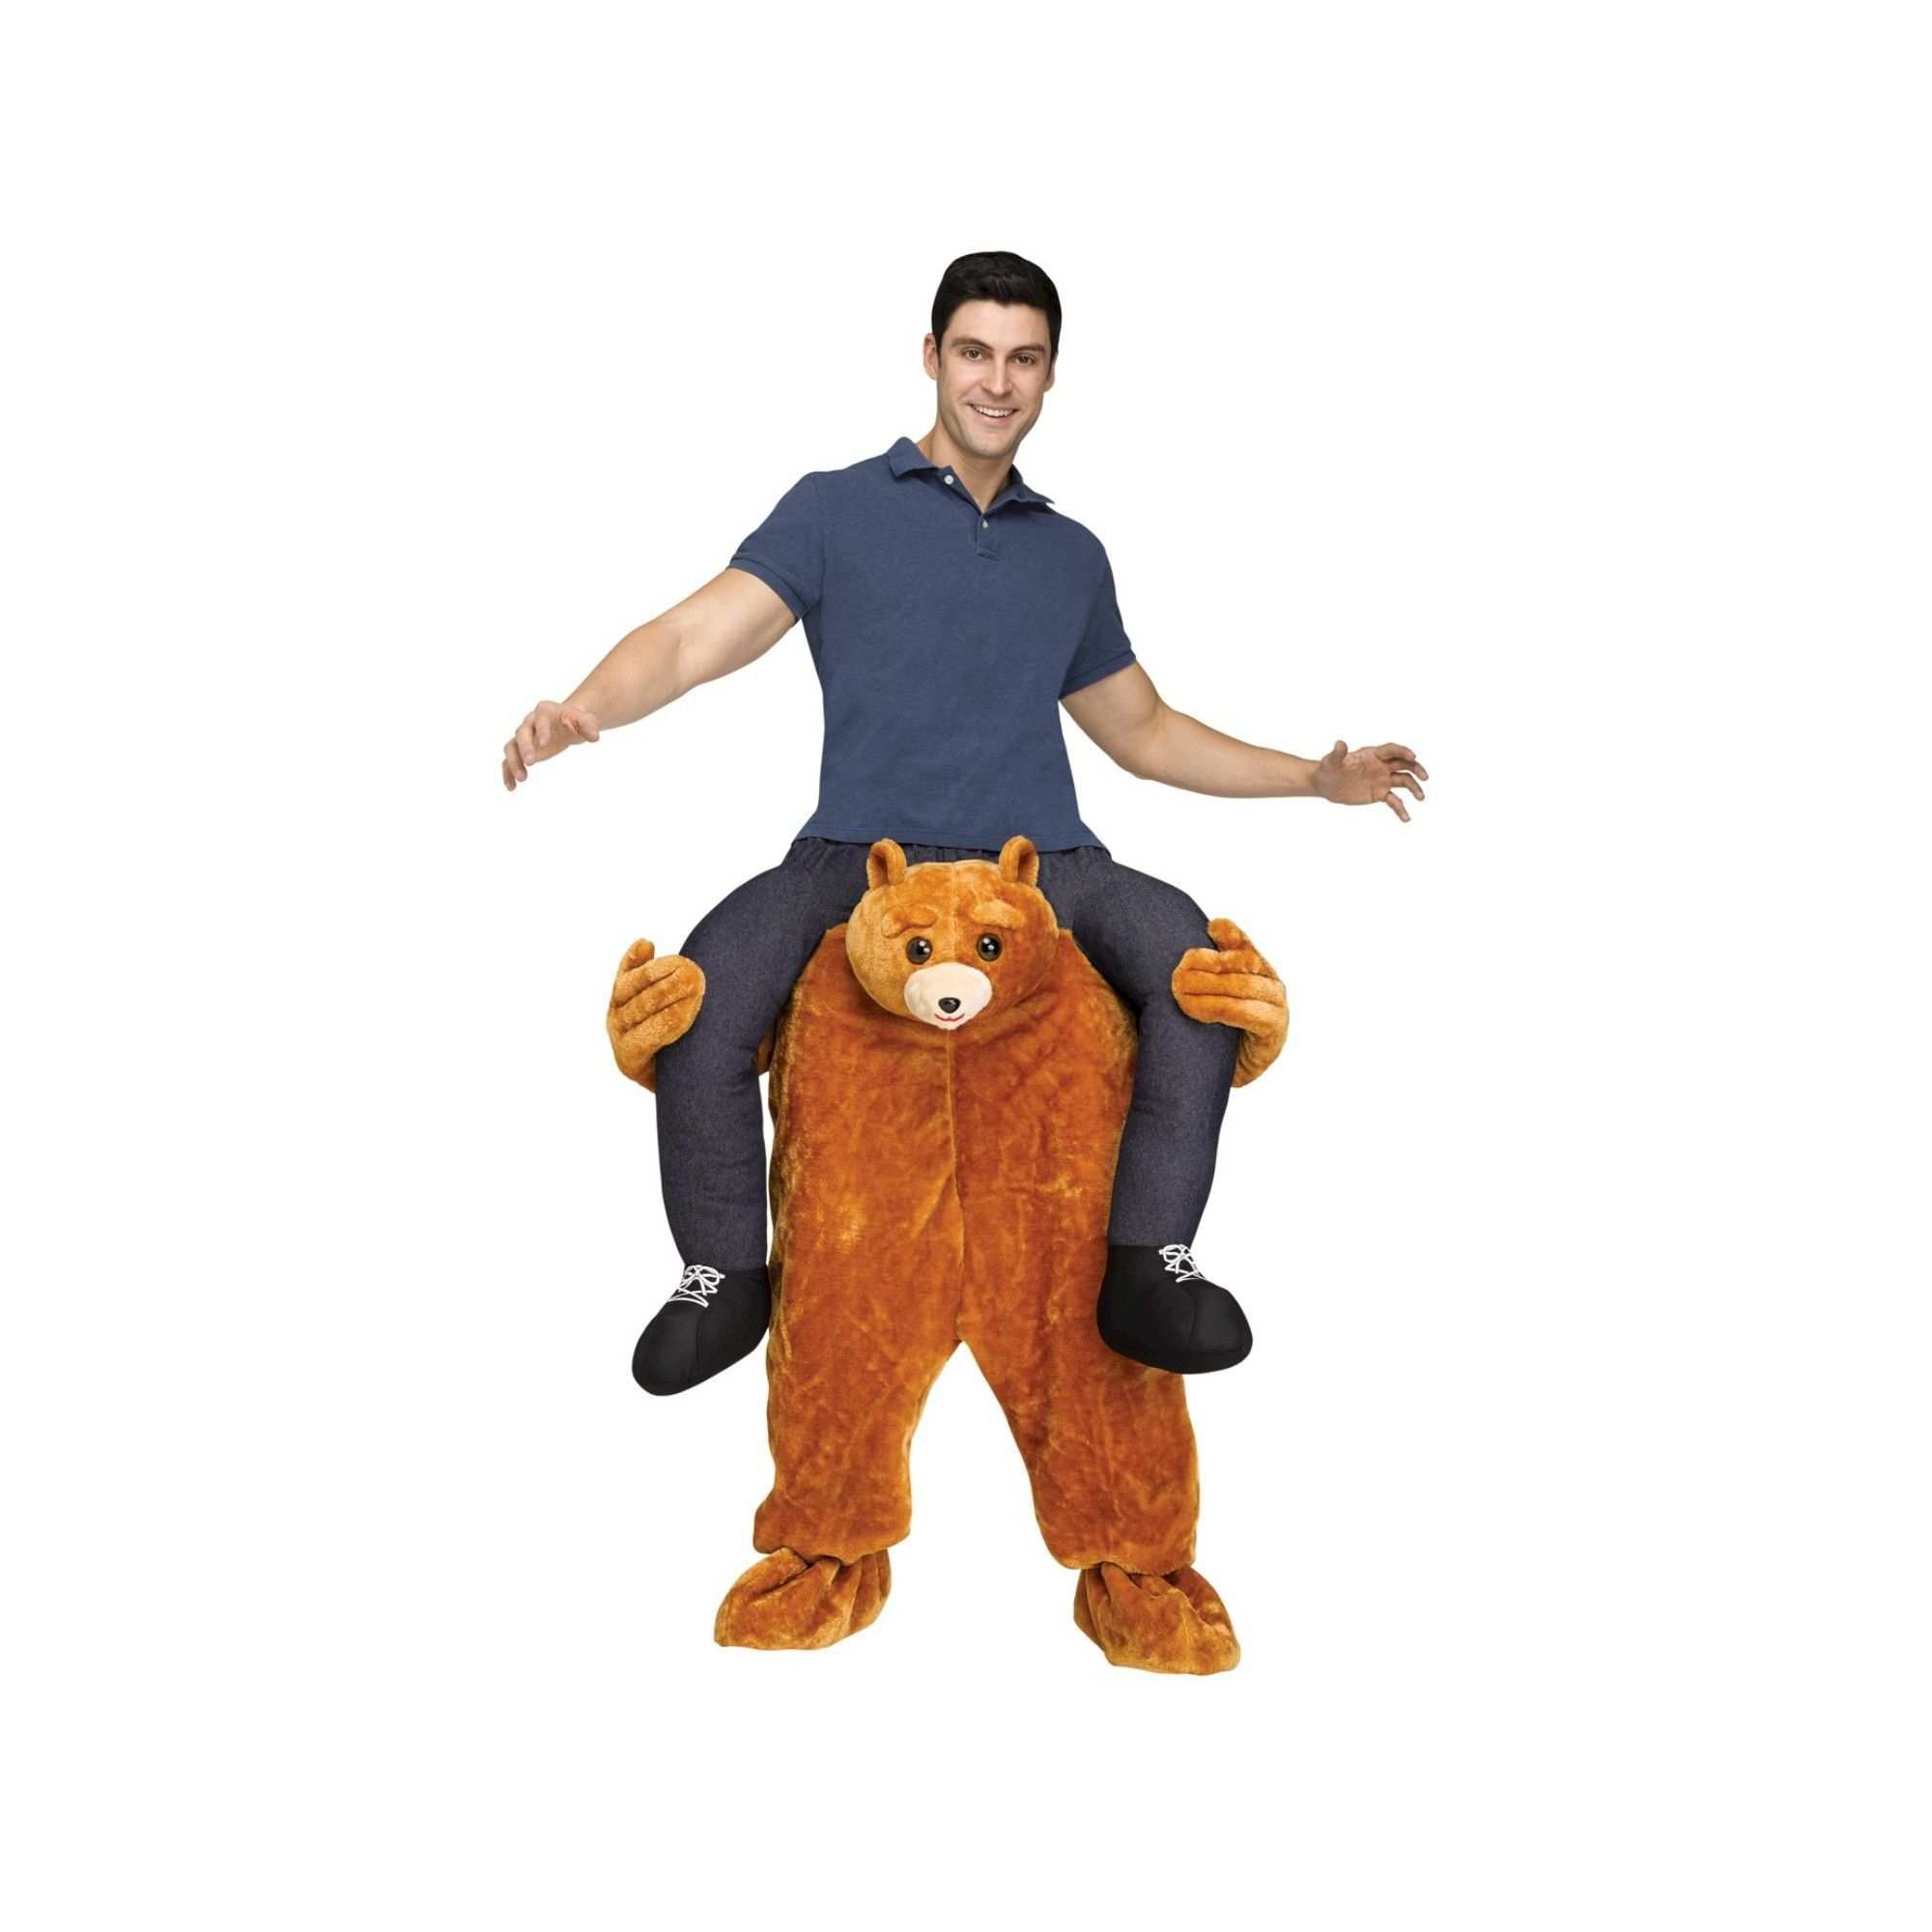 Halloween Teddy Bear Riding On Shoulder Adult Costume